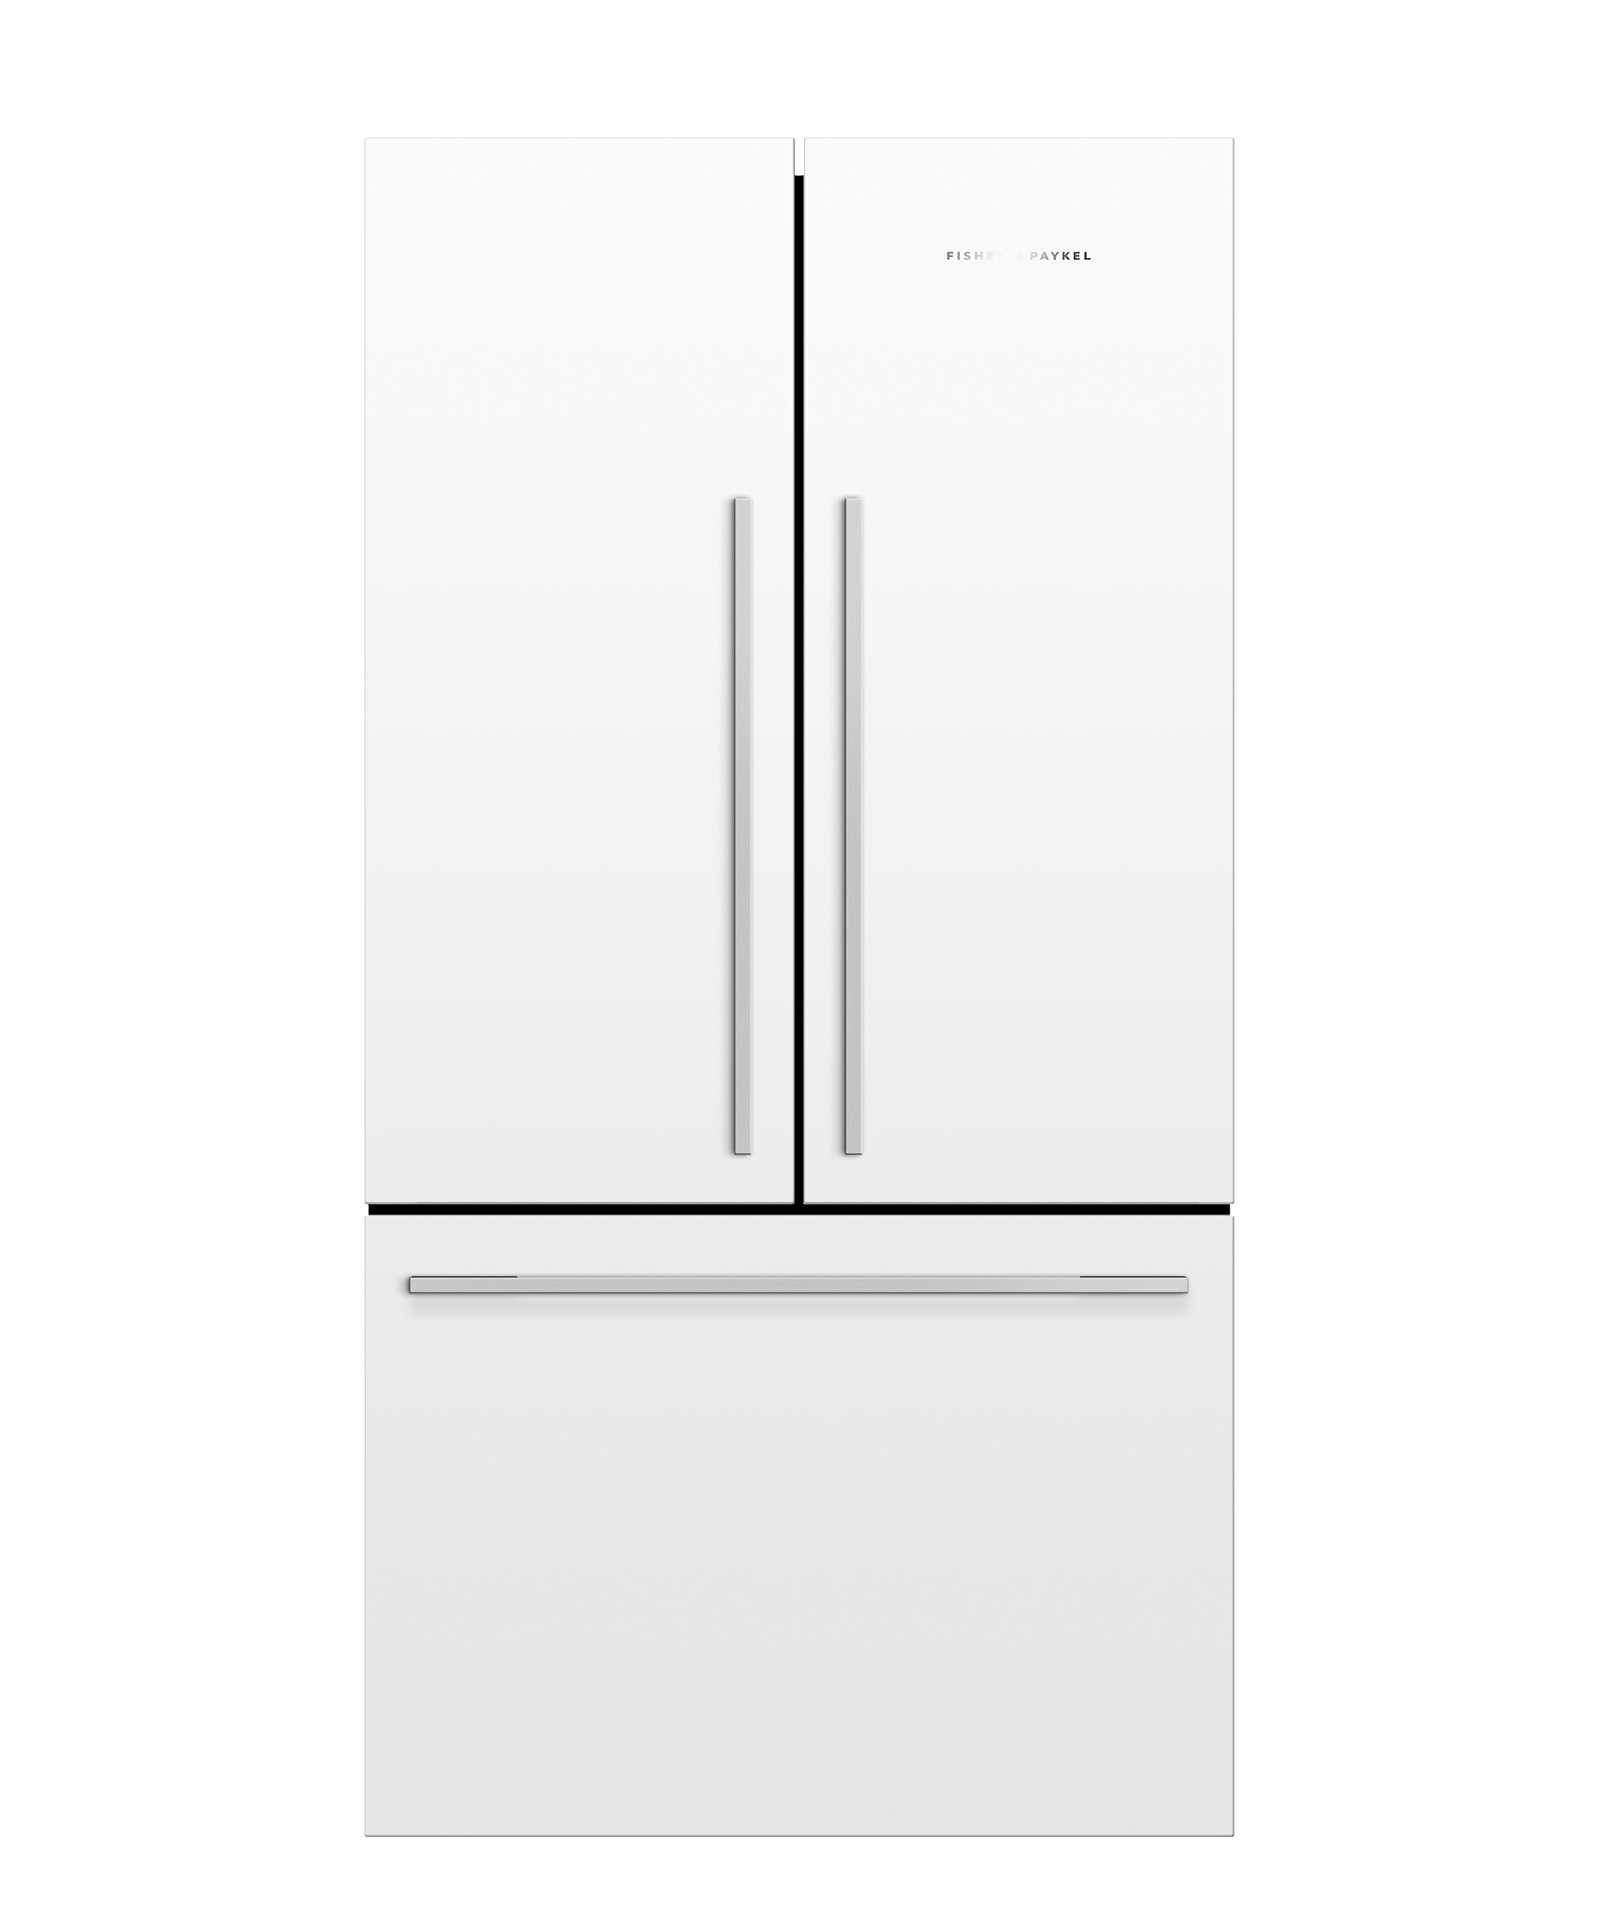 RF170ADW5_N - ActiveSmart™ Refrigerator - 17 cu. ft. counter depth French Door - 25097